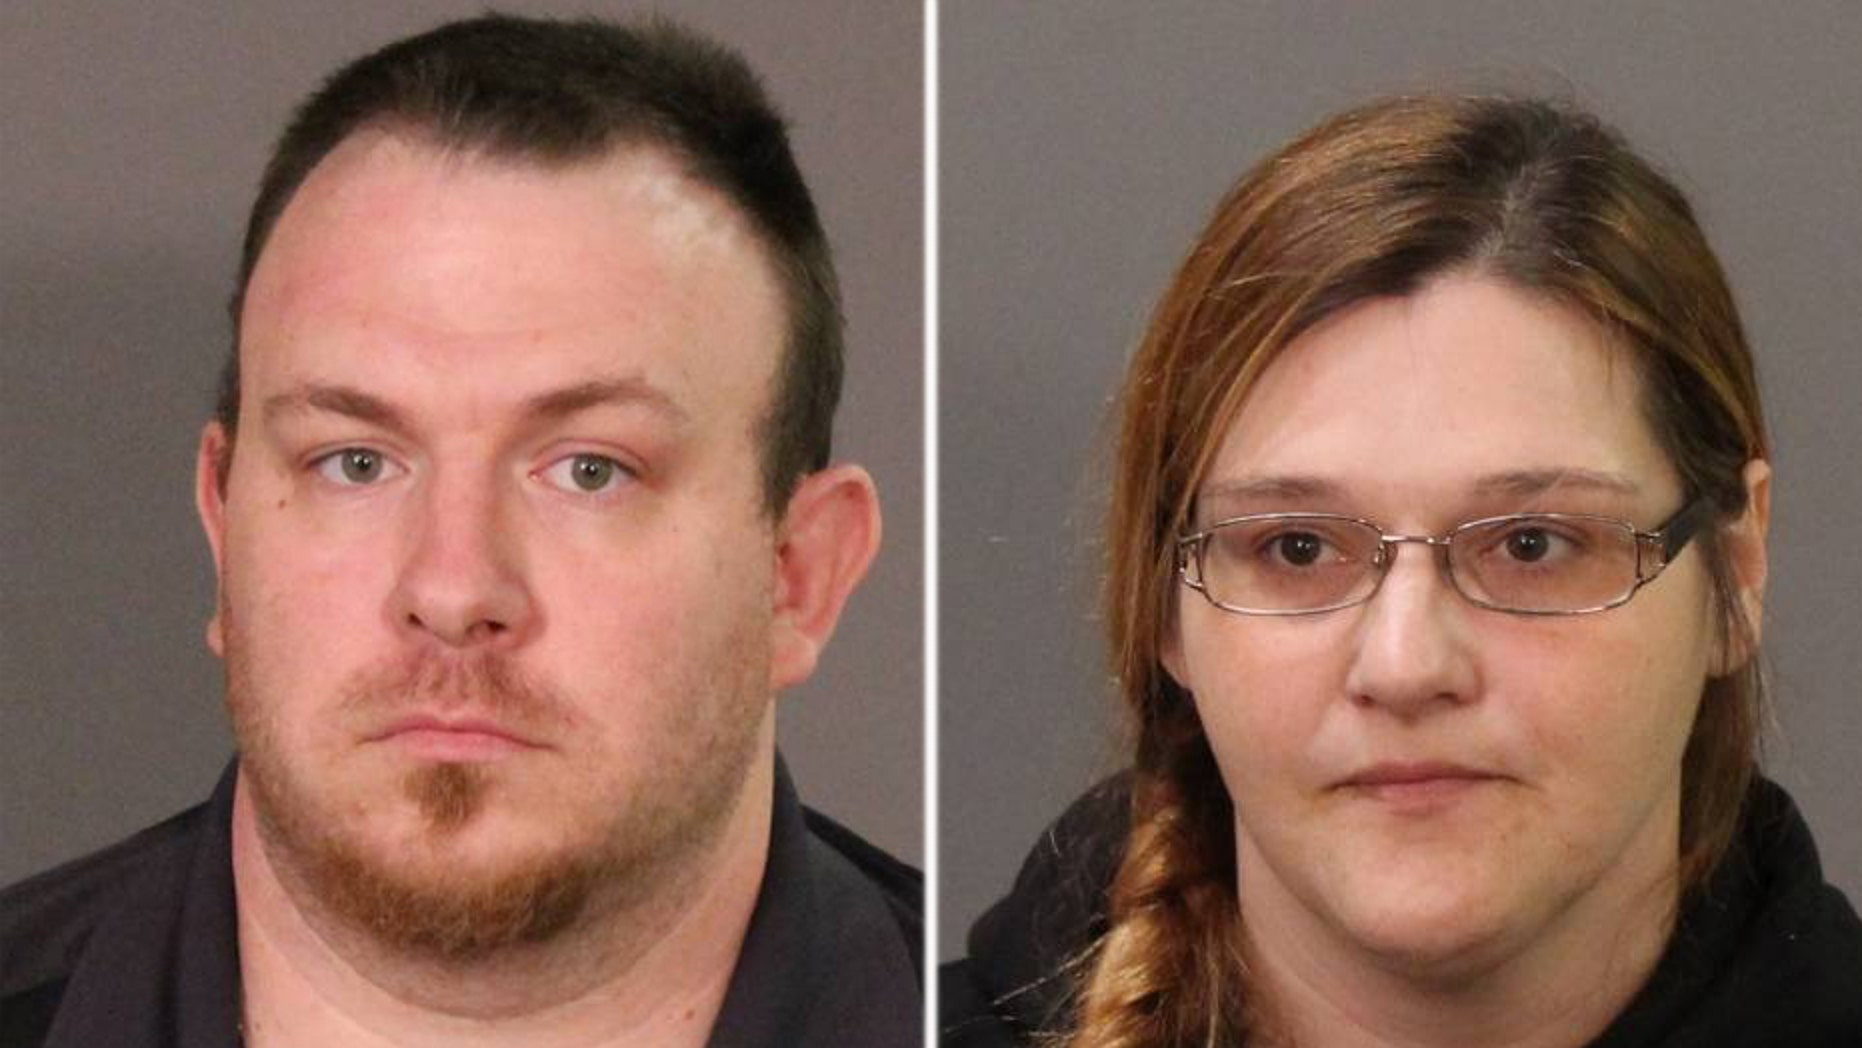 Martin and Jolene LaFrance, both 35, were arrested Friday and charged with one count each of scheme to defraud in the first degree and endangering the welfare of a child, authorities said.